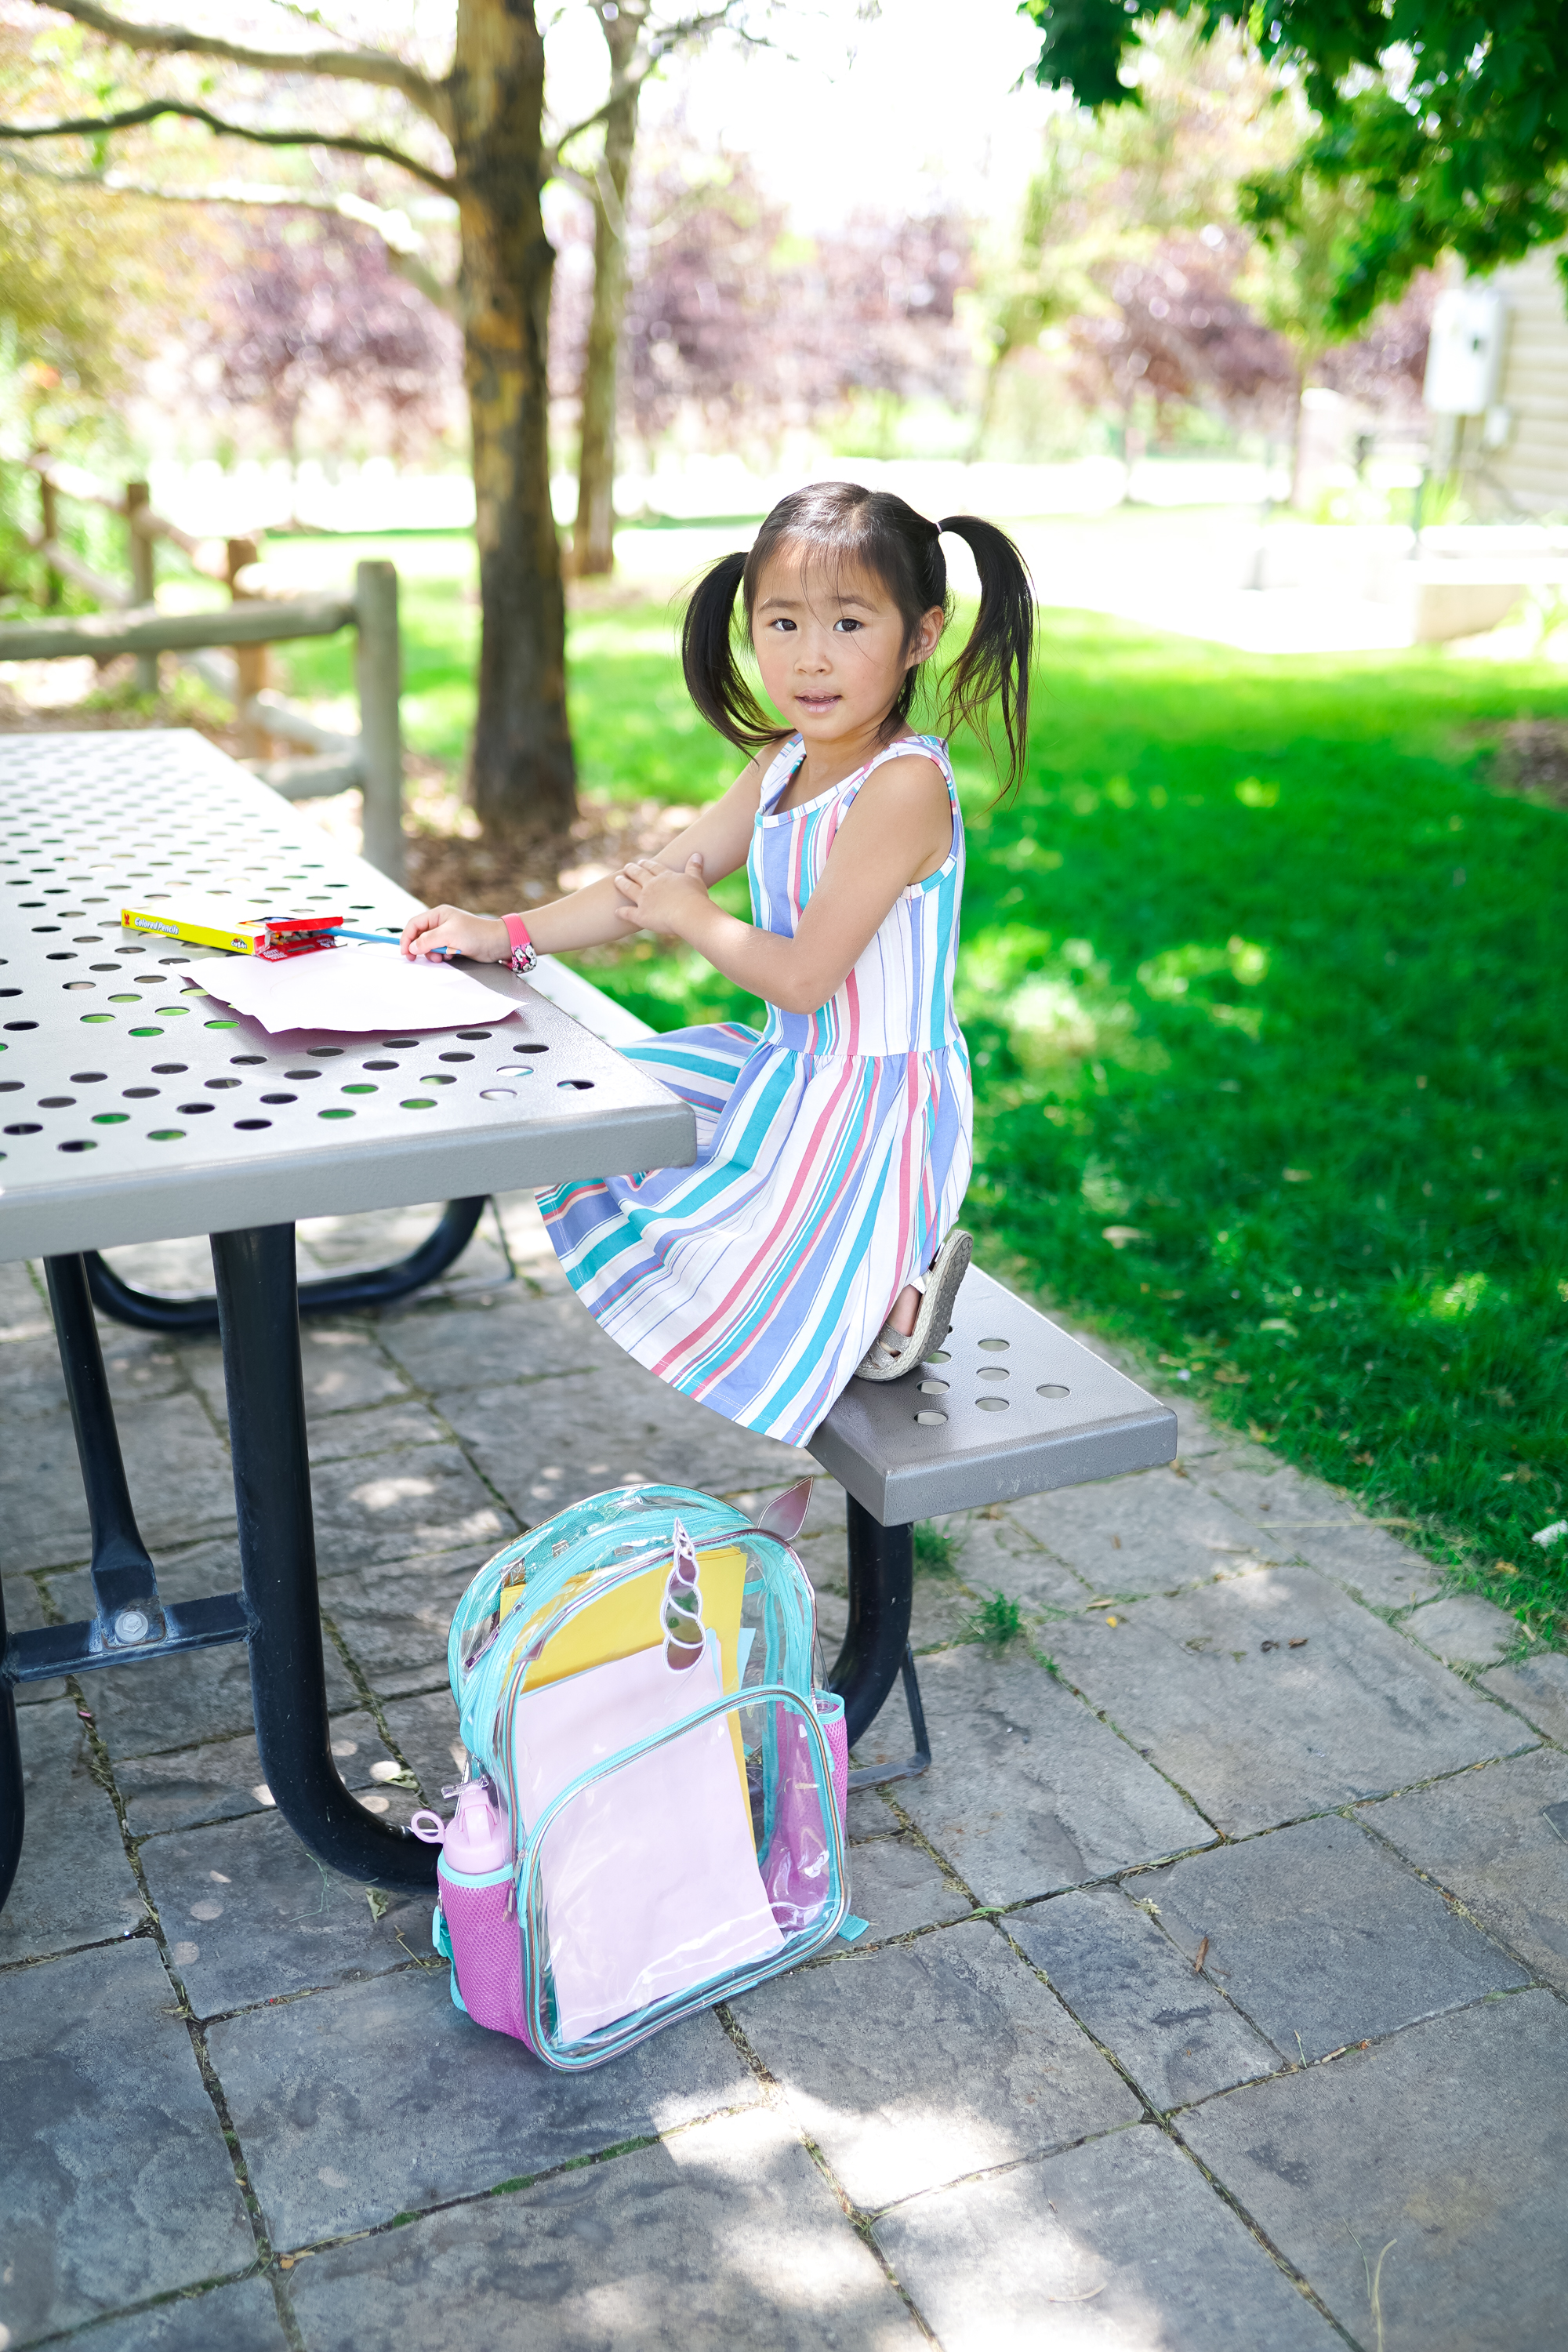 Utah lifestyle blogger, SandyALaMode shares a look and affordable and stylish back to school outfits for kids from Walmart! Check it out!